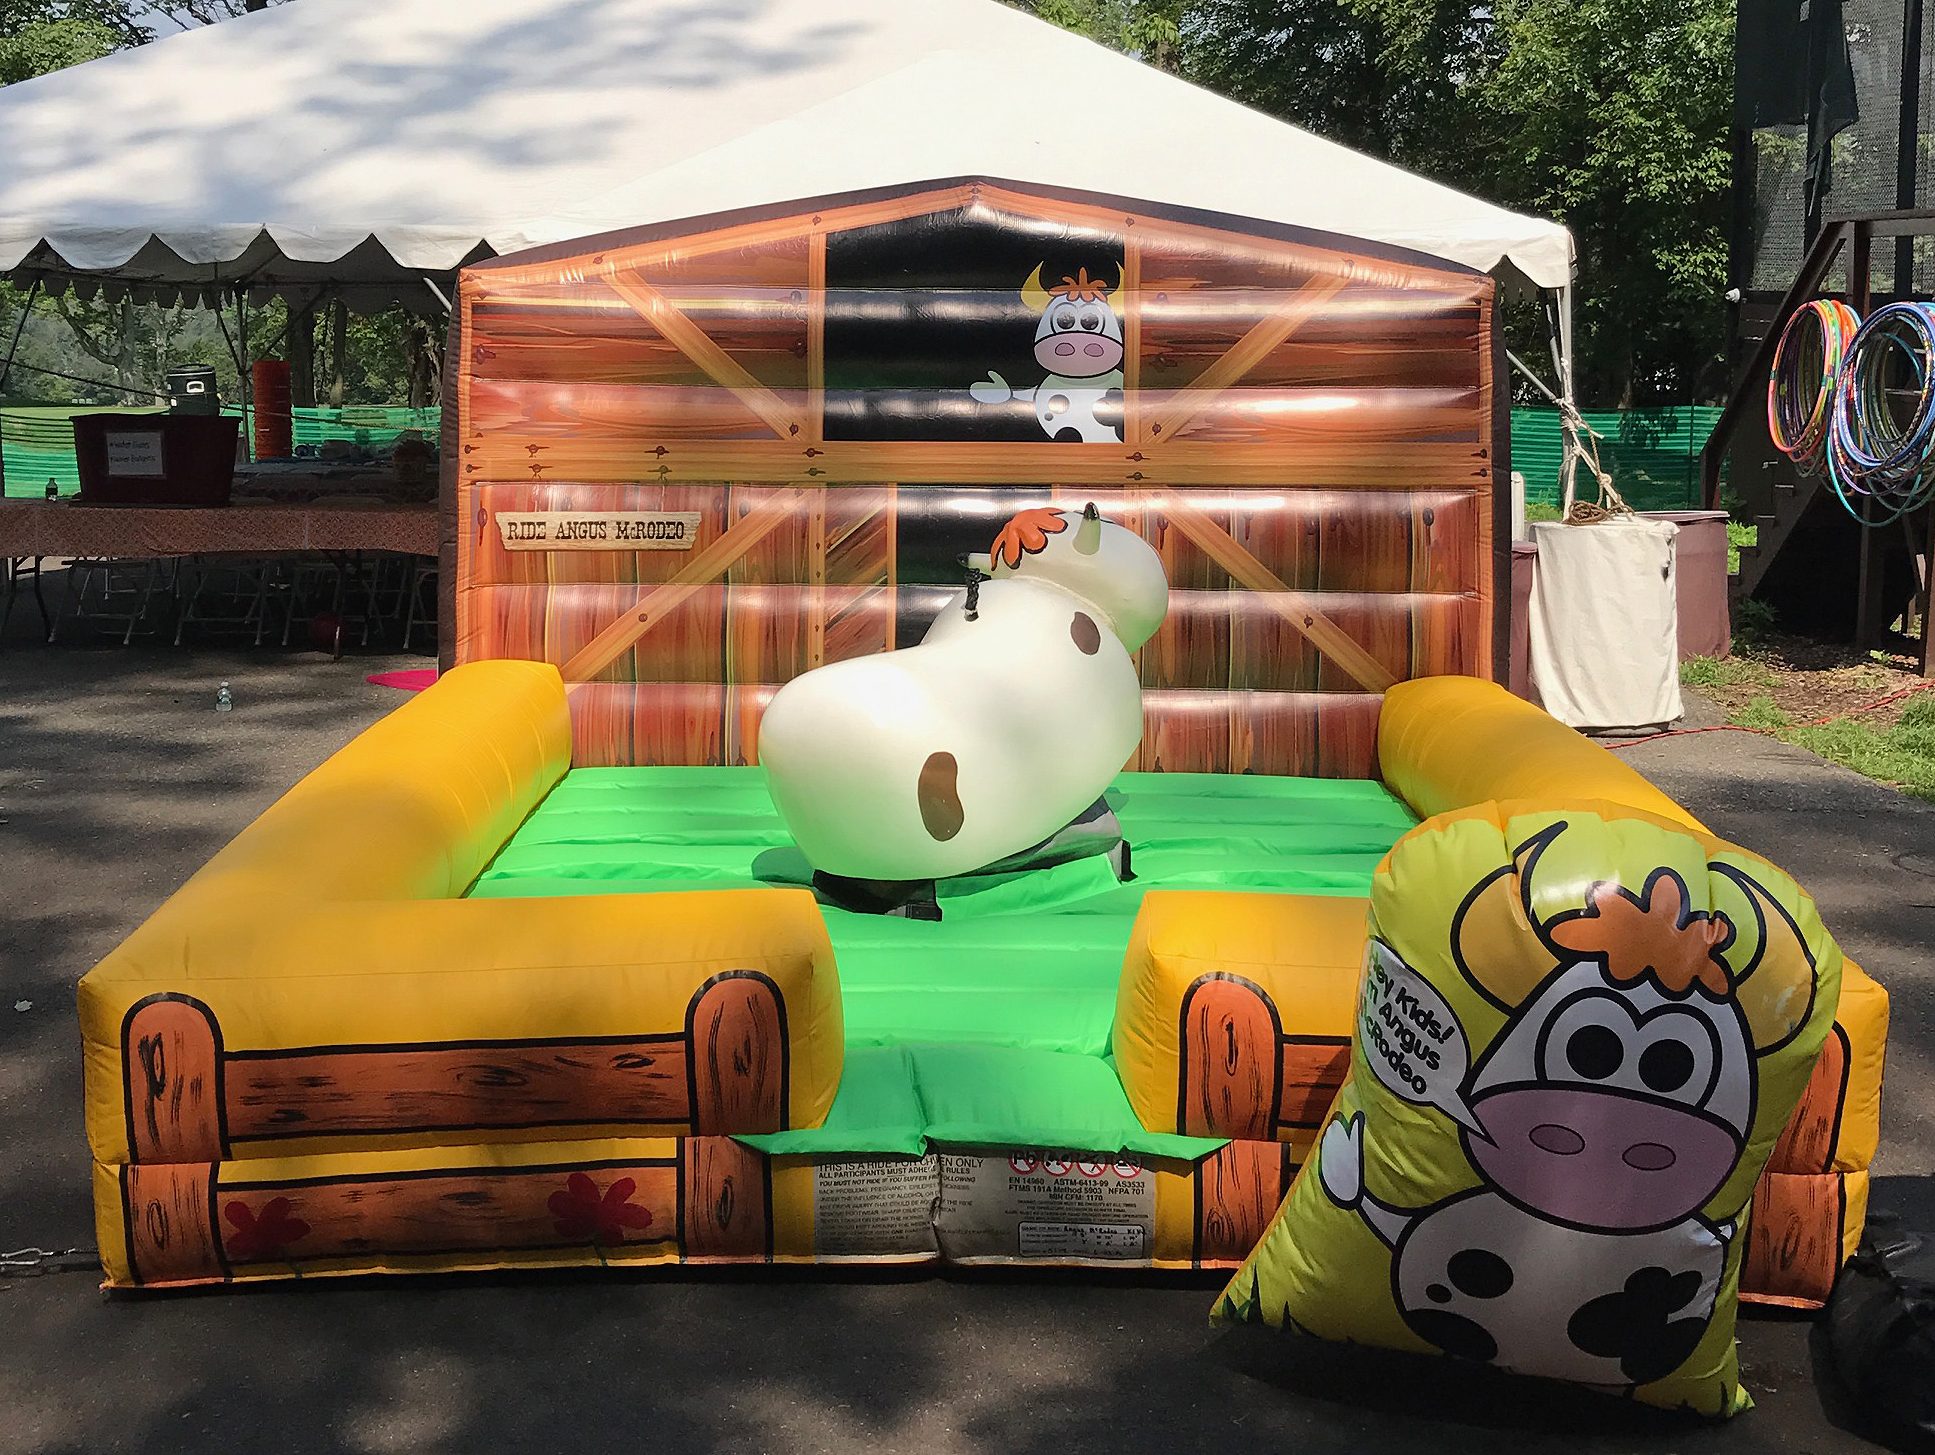 Mechanical Baby Bull